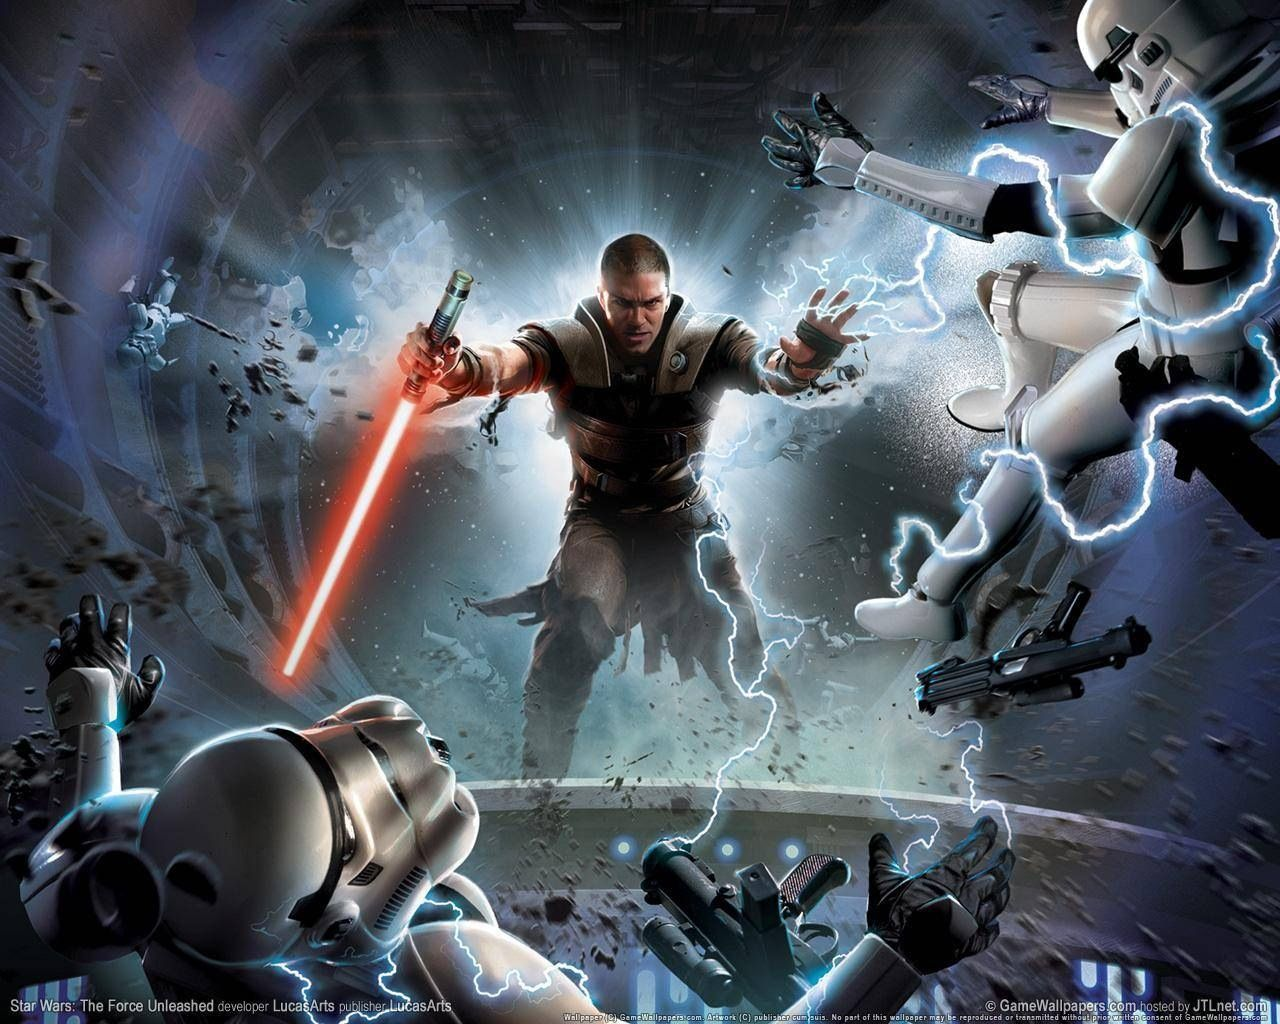 Star Wars The Force Unleased Star Wars Games Star Wars Background Star Wars Video Games